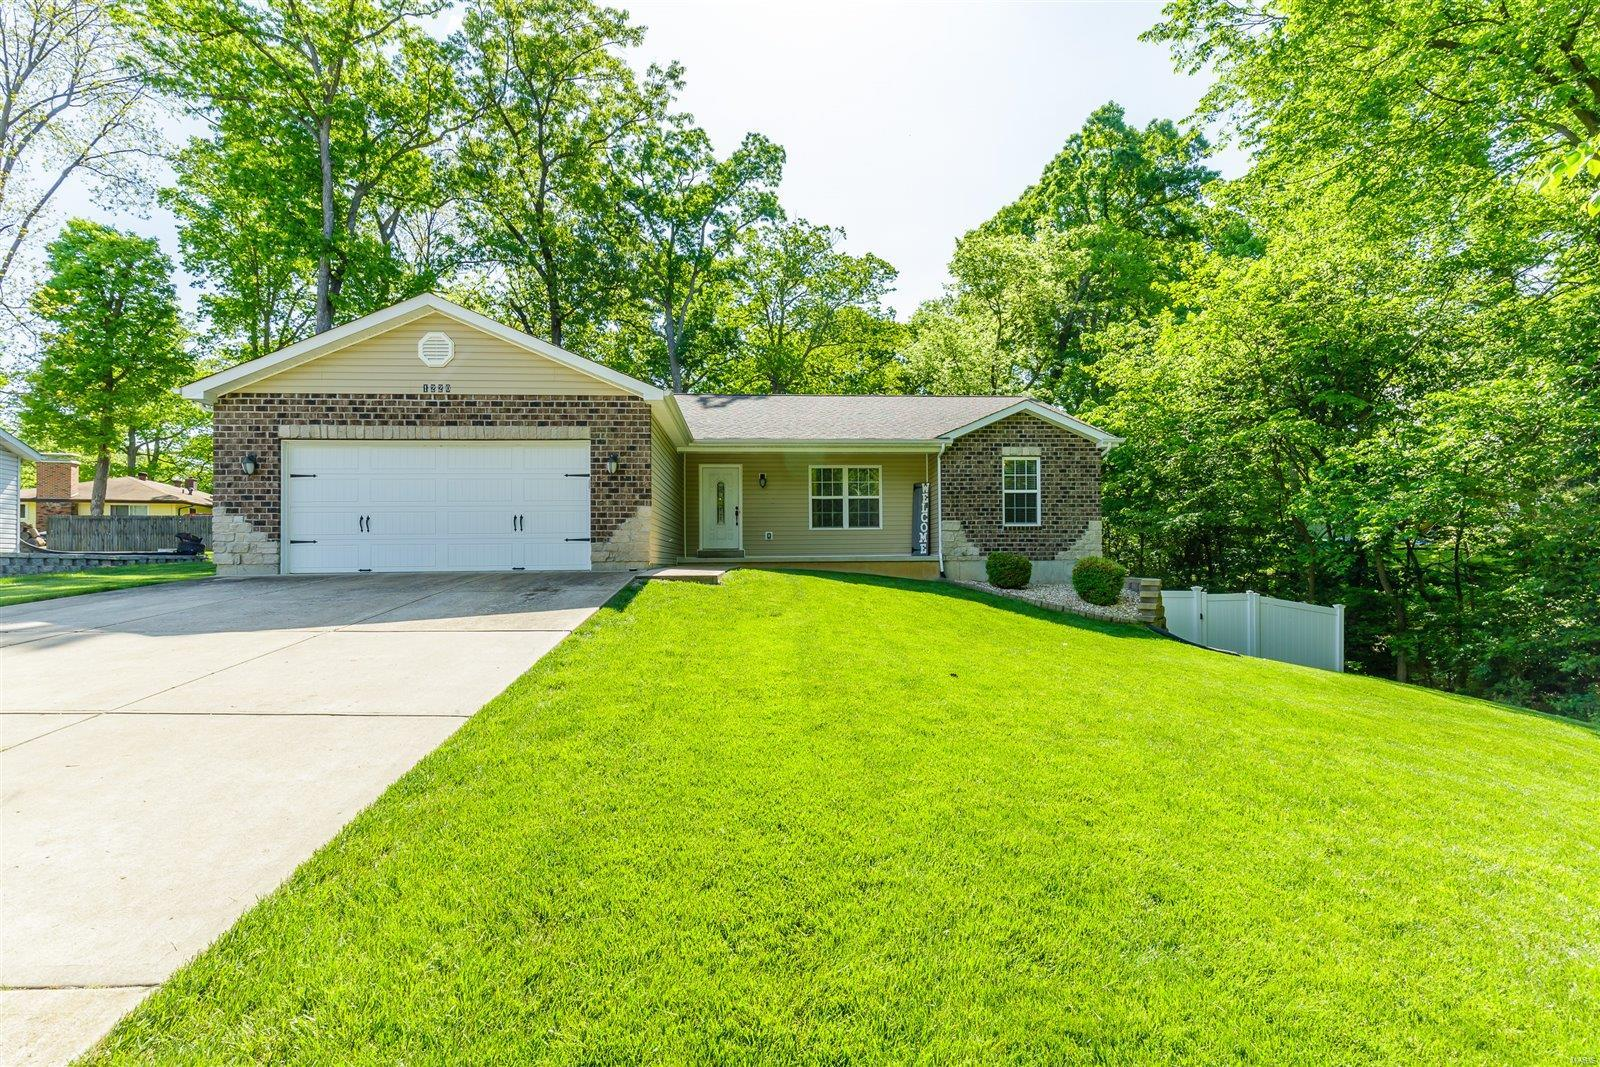 1220 Del Haven Dr Property Photo - Fenton, MO real estate listing